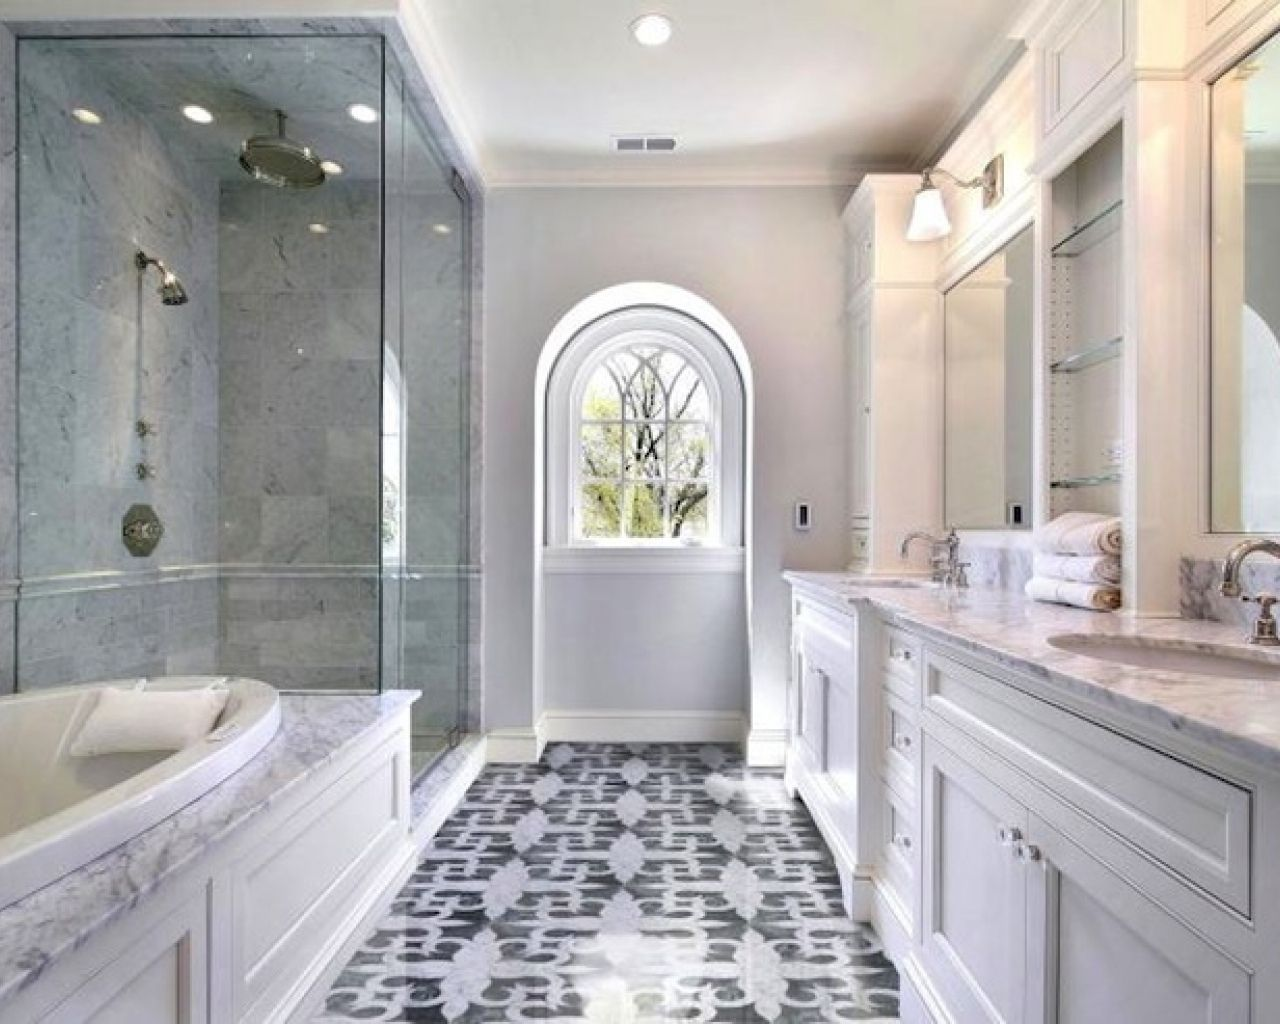 Tile Flooring 30 Ideas About Marble Bathroom Tiles Pros And Cons